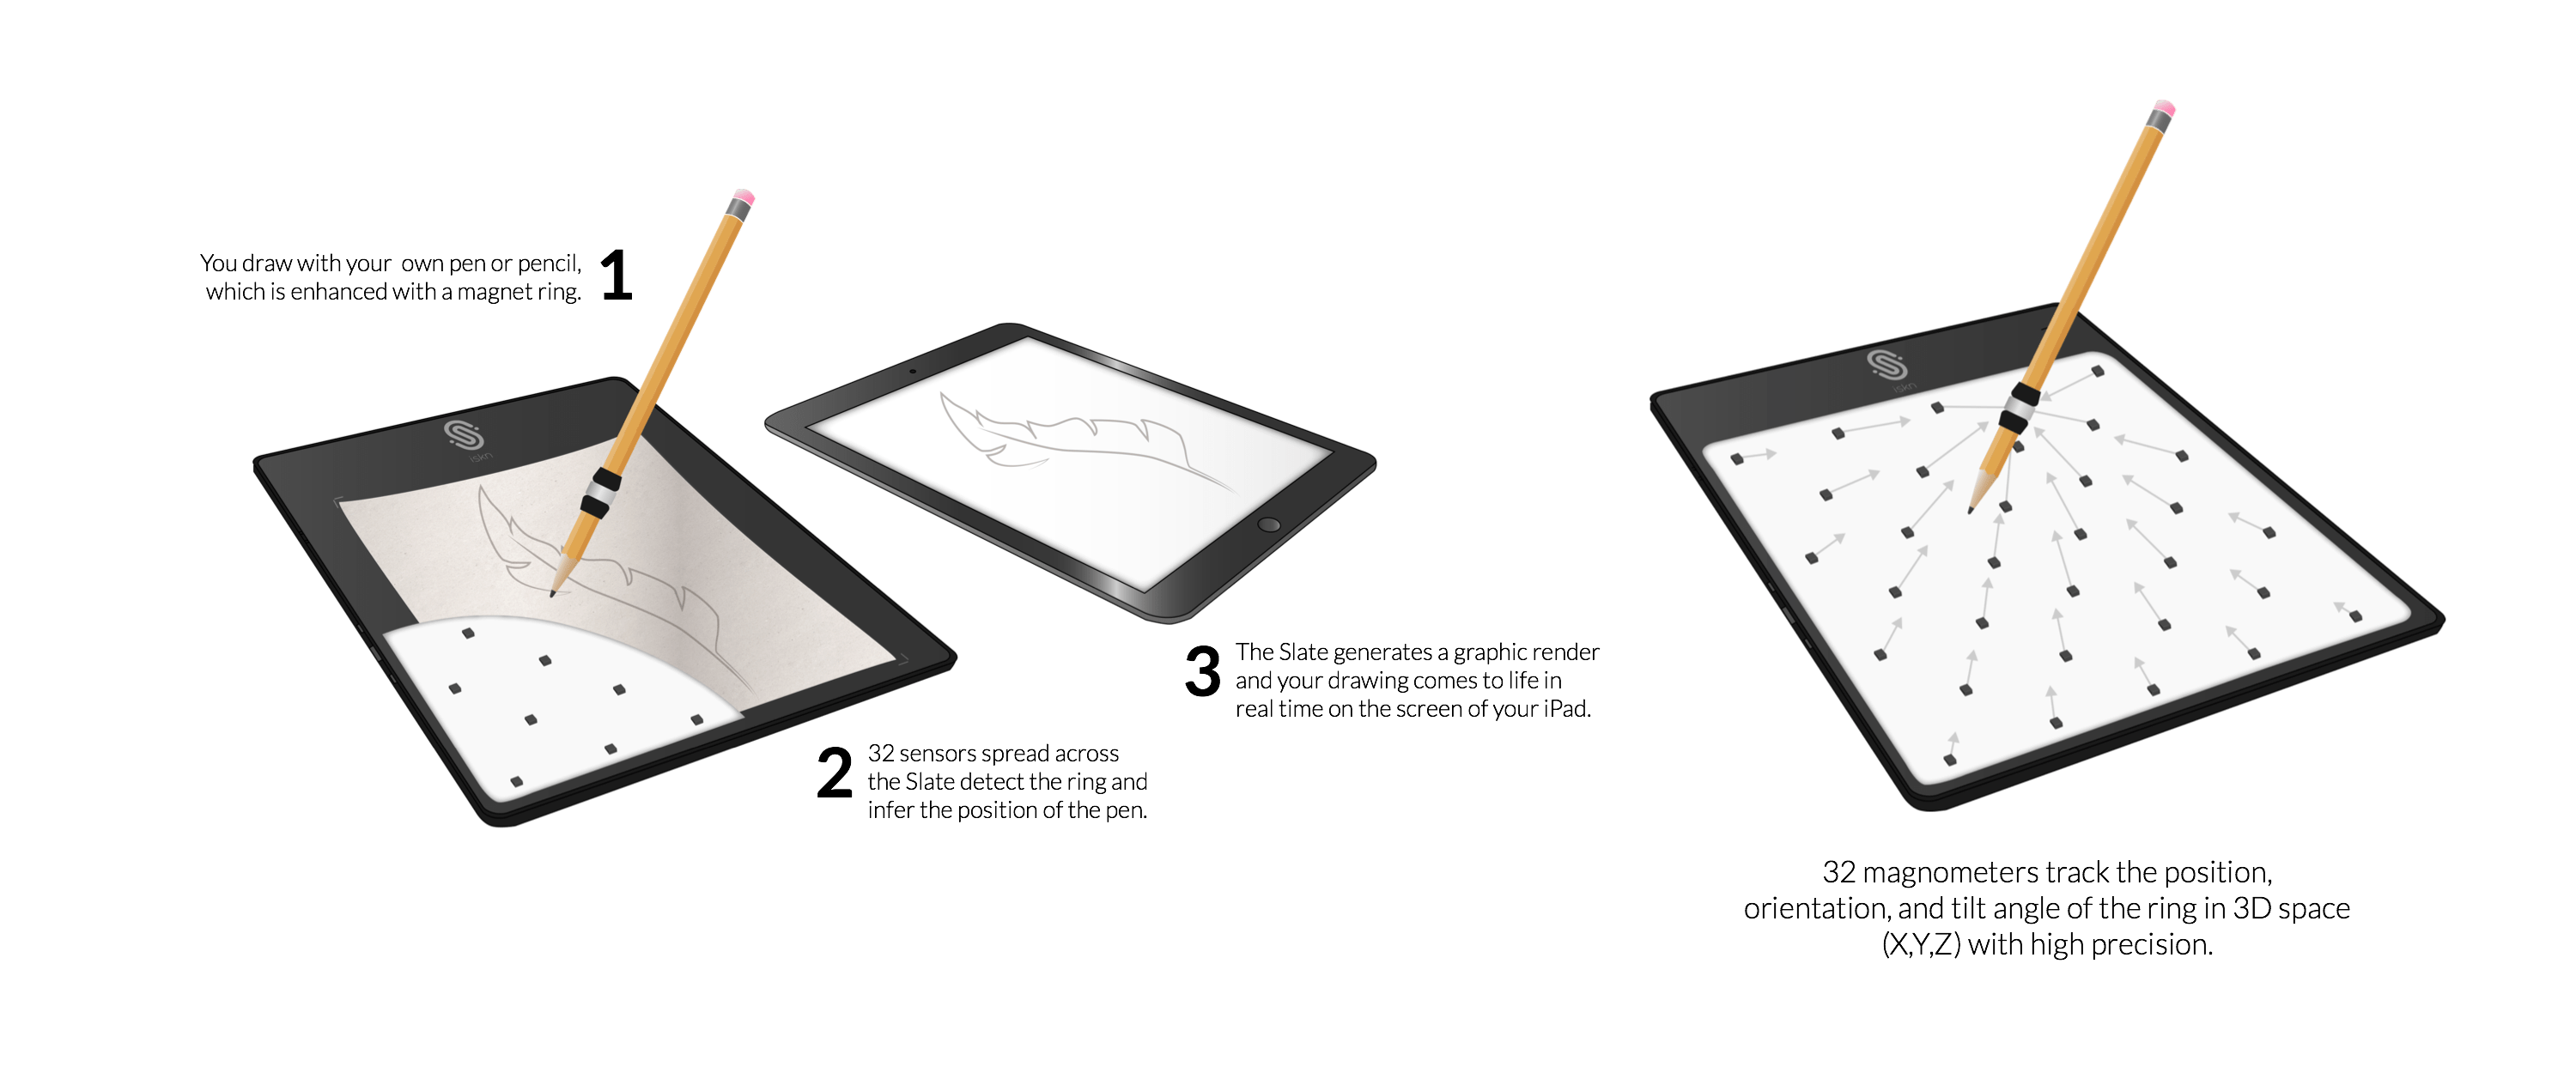 Digitizing drawing slate. Digitizes your sketch as